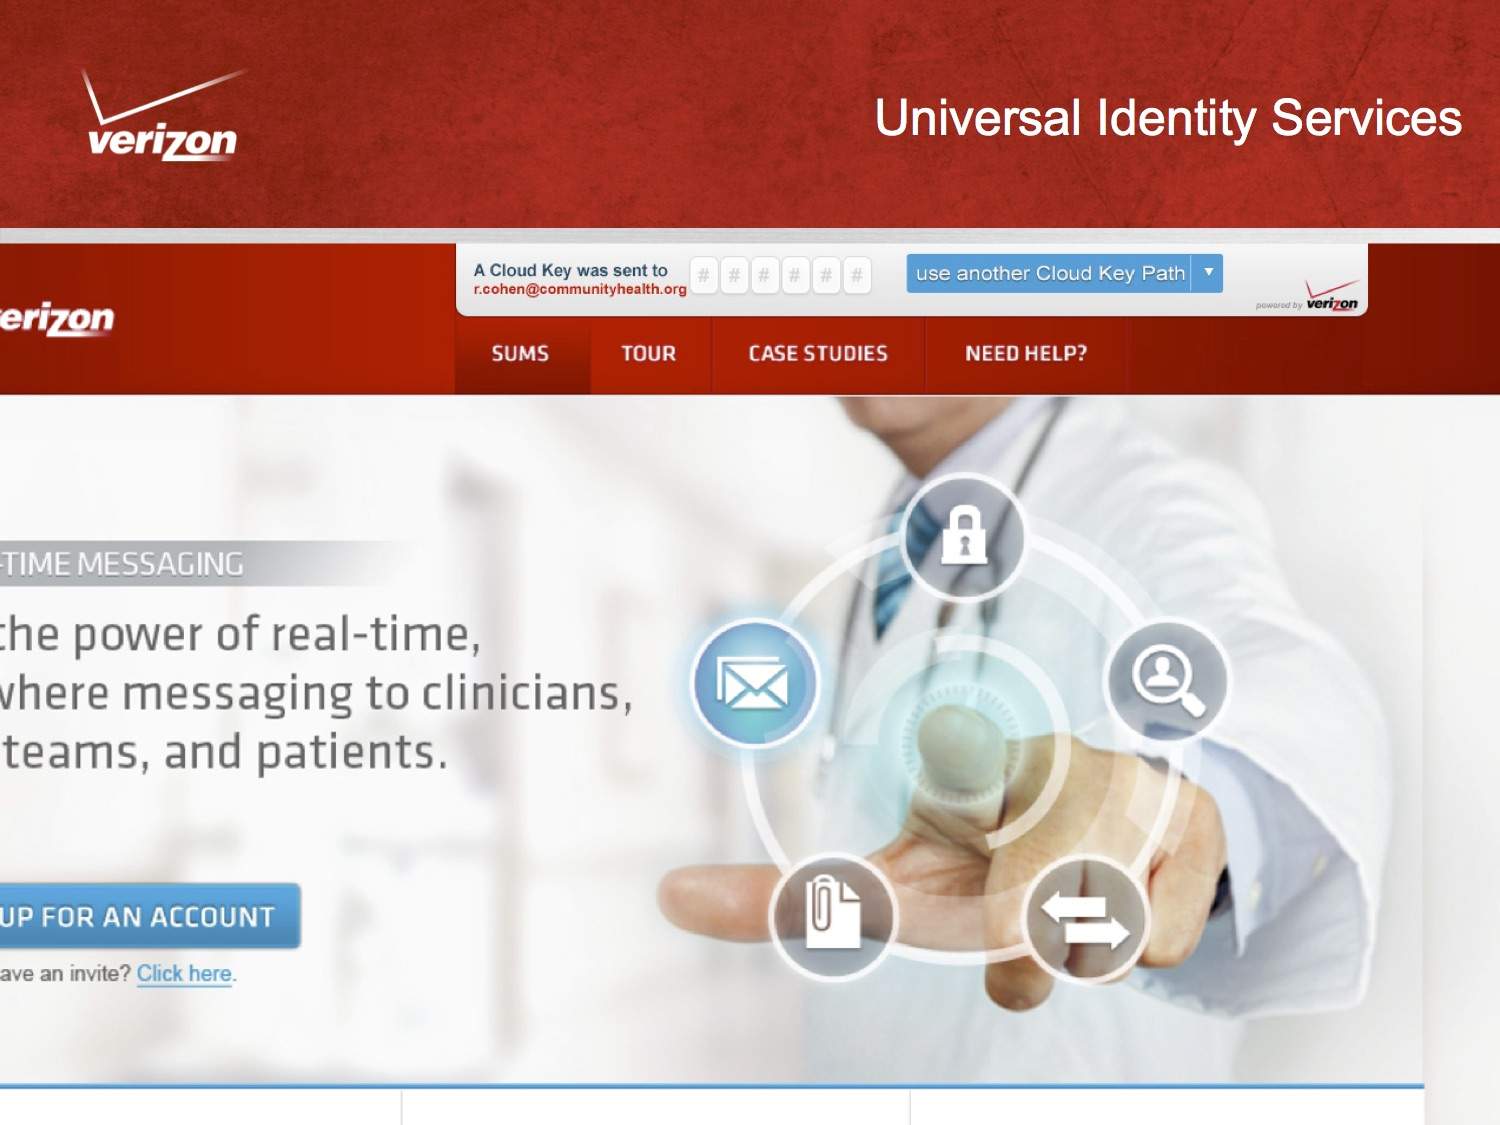 img/verizon-uis/designsbytravis-ideate-Verizon-UIS-HIMSS-Demo17.jpg